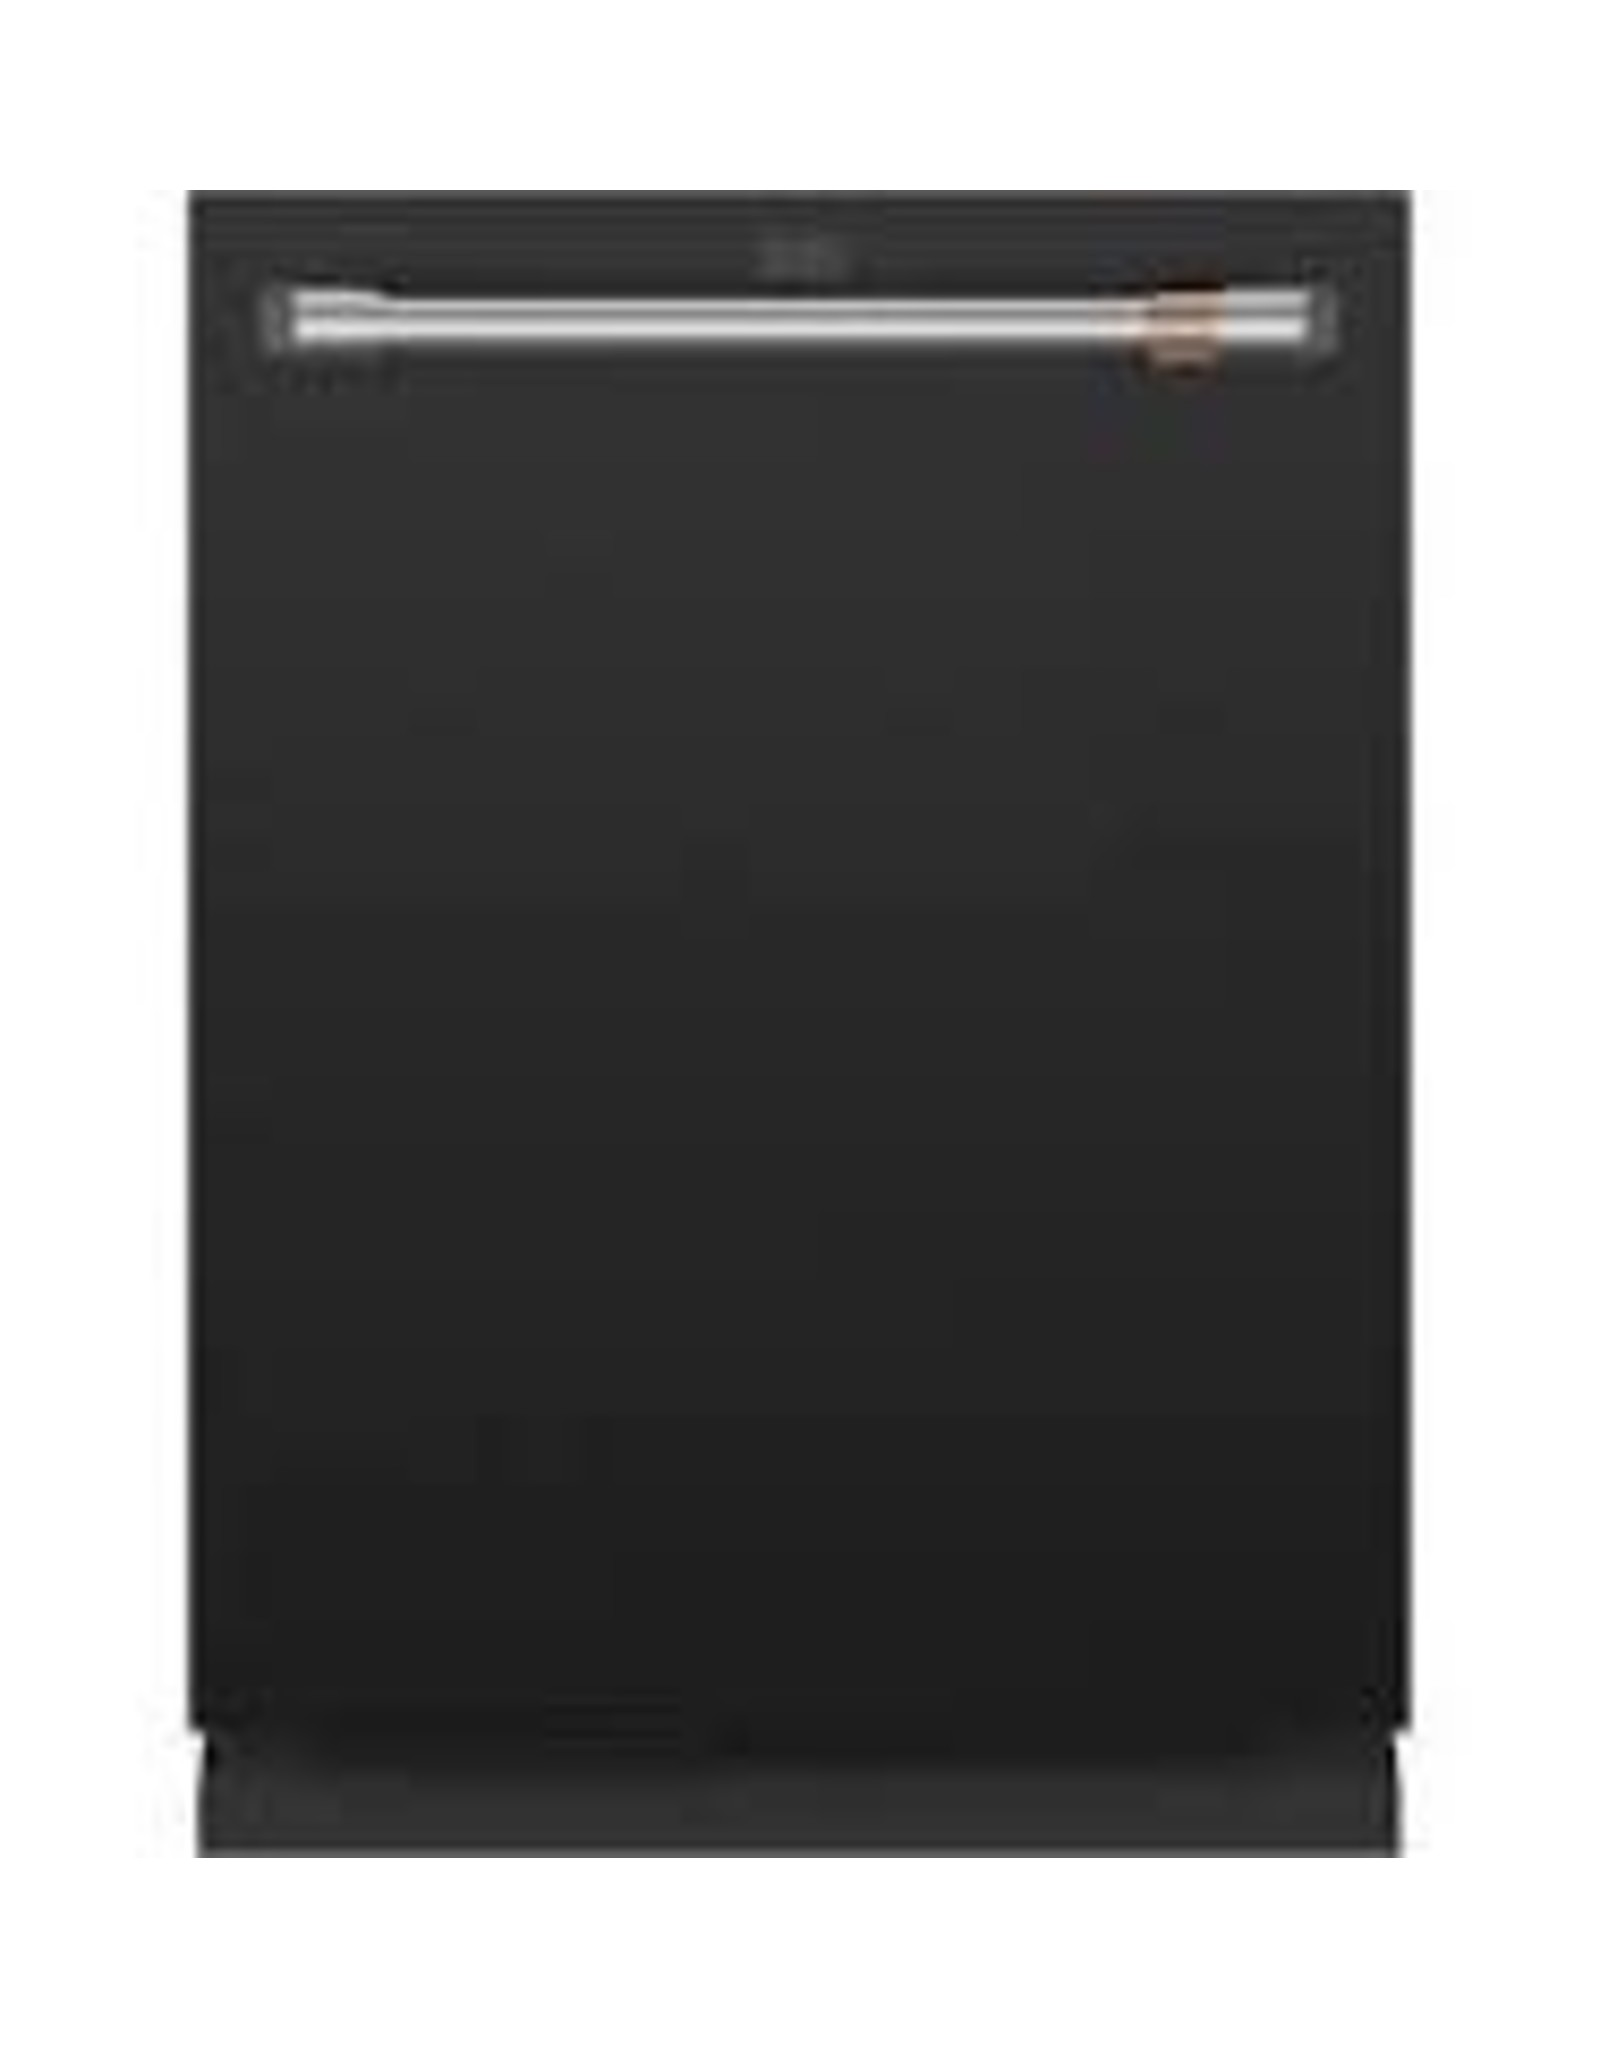 Cafe' CDT845P3ND1 24 in. Fingerprint Resistant Matte Black Top Control Built-In Tall Tub Dishwasher 120-Volt with with 3rd Rack and 45 dBA